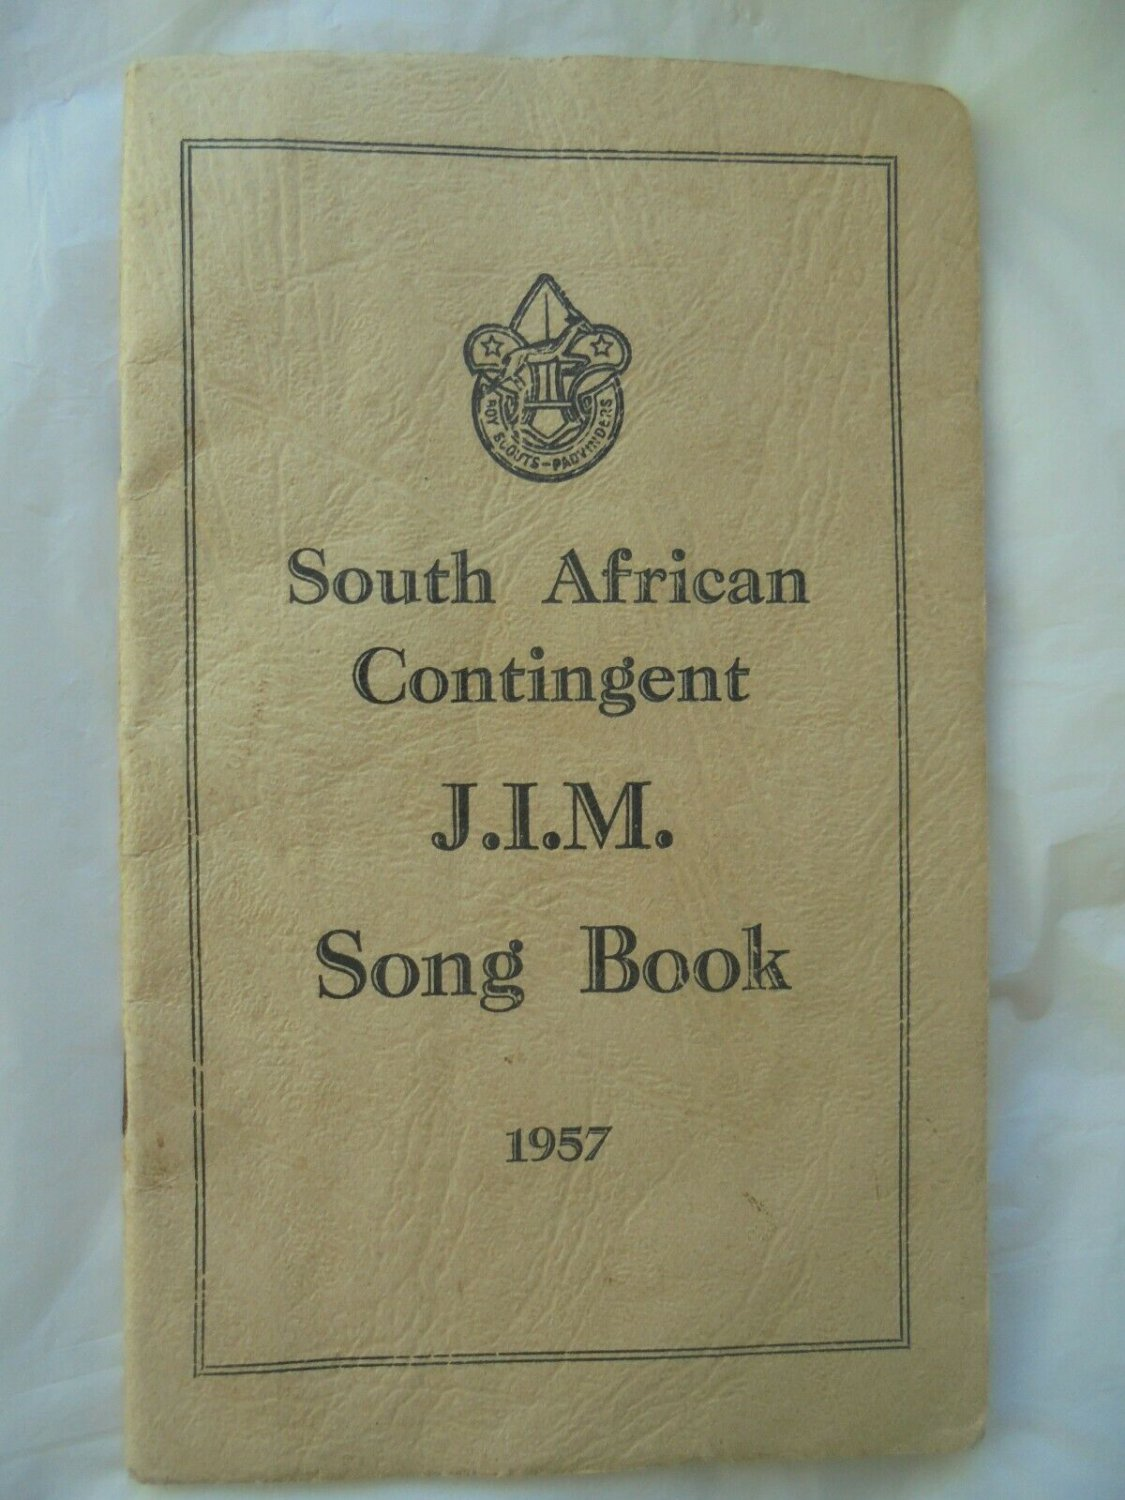 BOY SCOUTS South Africa Contingent JAMBOREE song book Original 1957